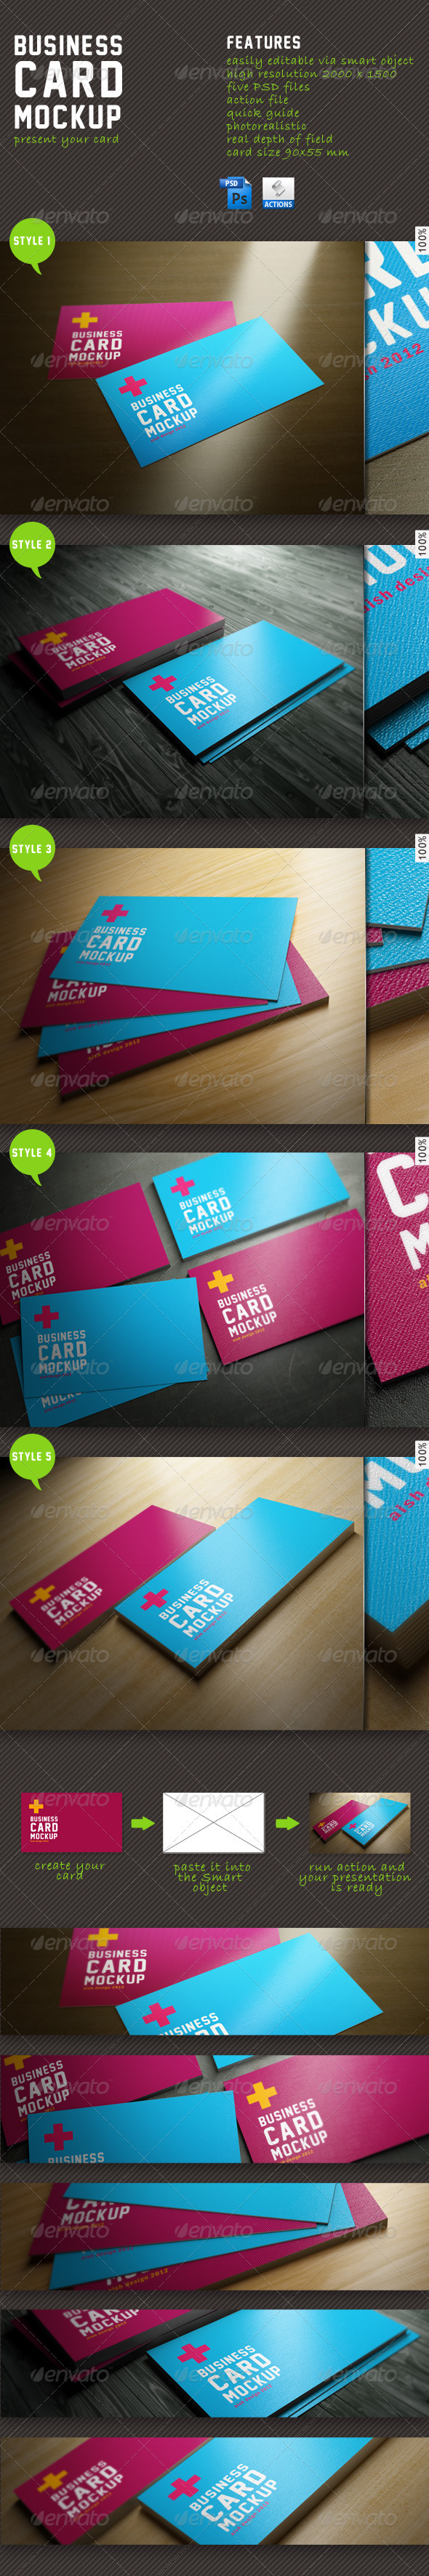 Business Card Mockup by aish